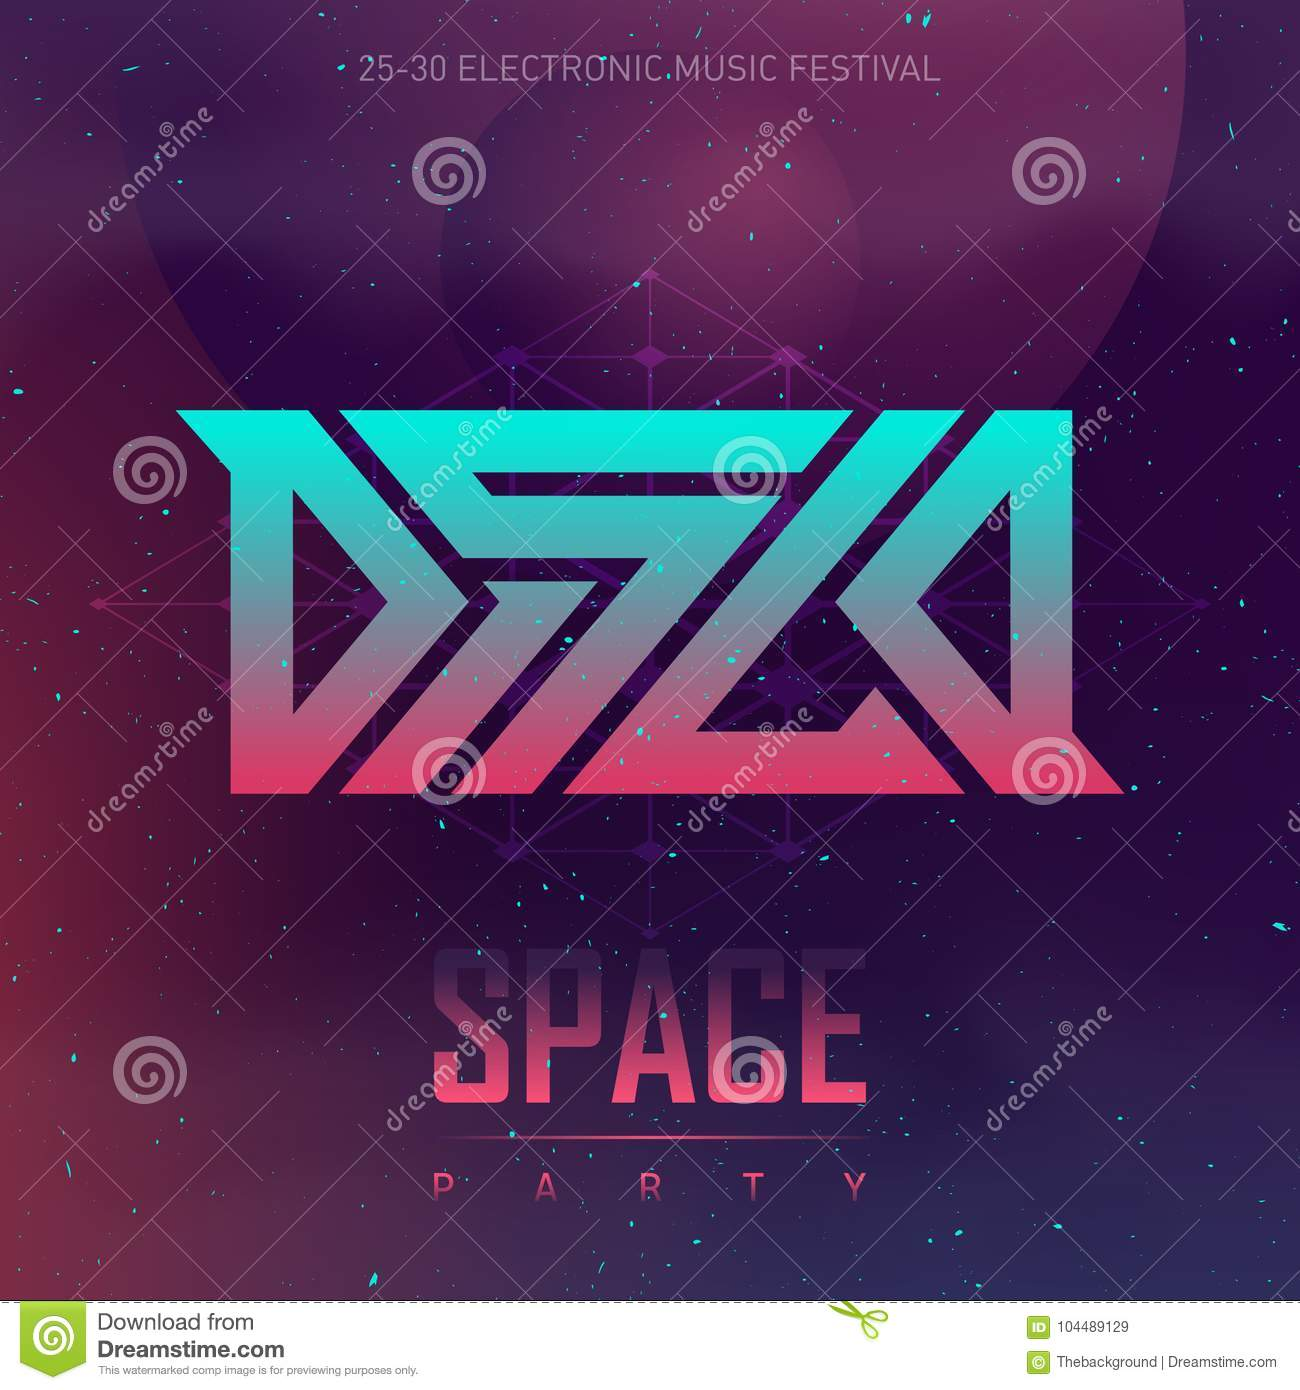 Electronica Medium Font Disco Space Party Electronic Music Festival Futuristic Design